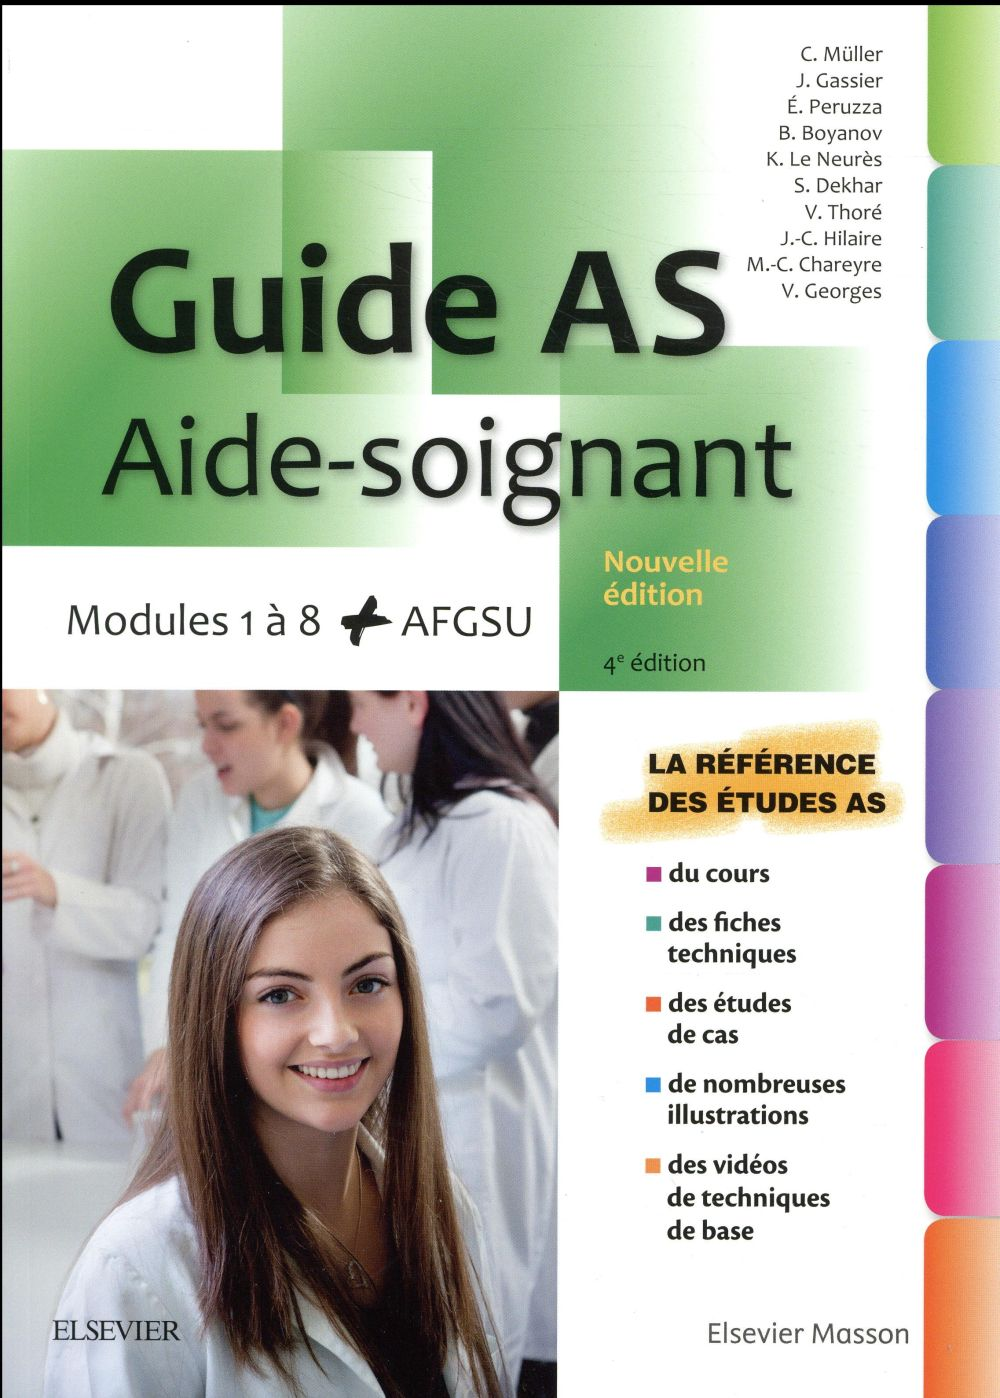 GUIDE AS - AIDE-SOIGNANT  -  MODULES 1 A 8 (4E EDITION)  Elsevier Masson